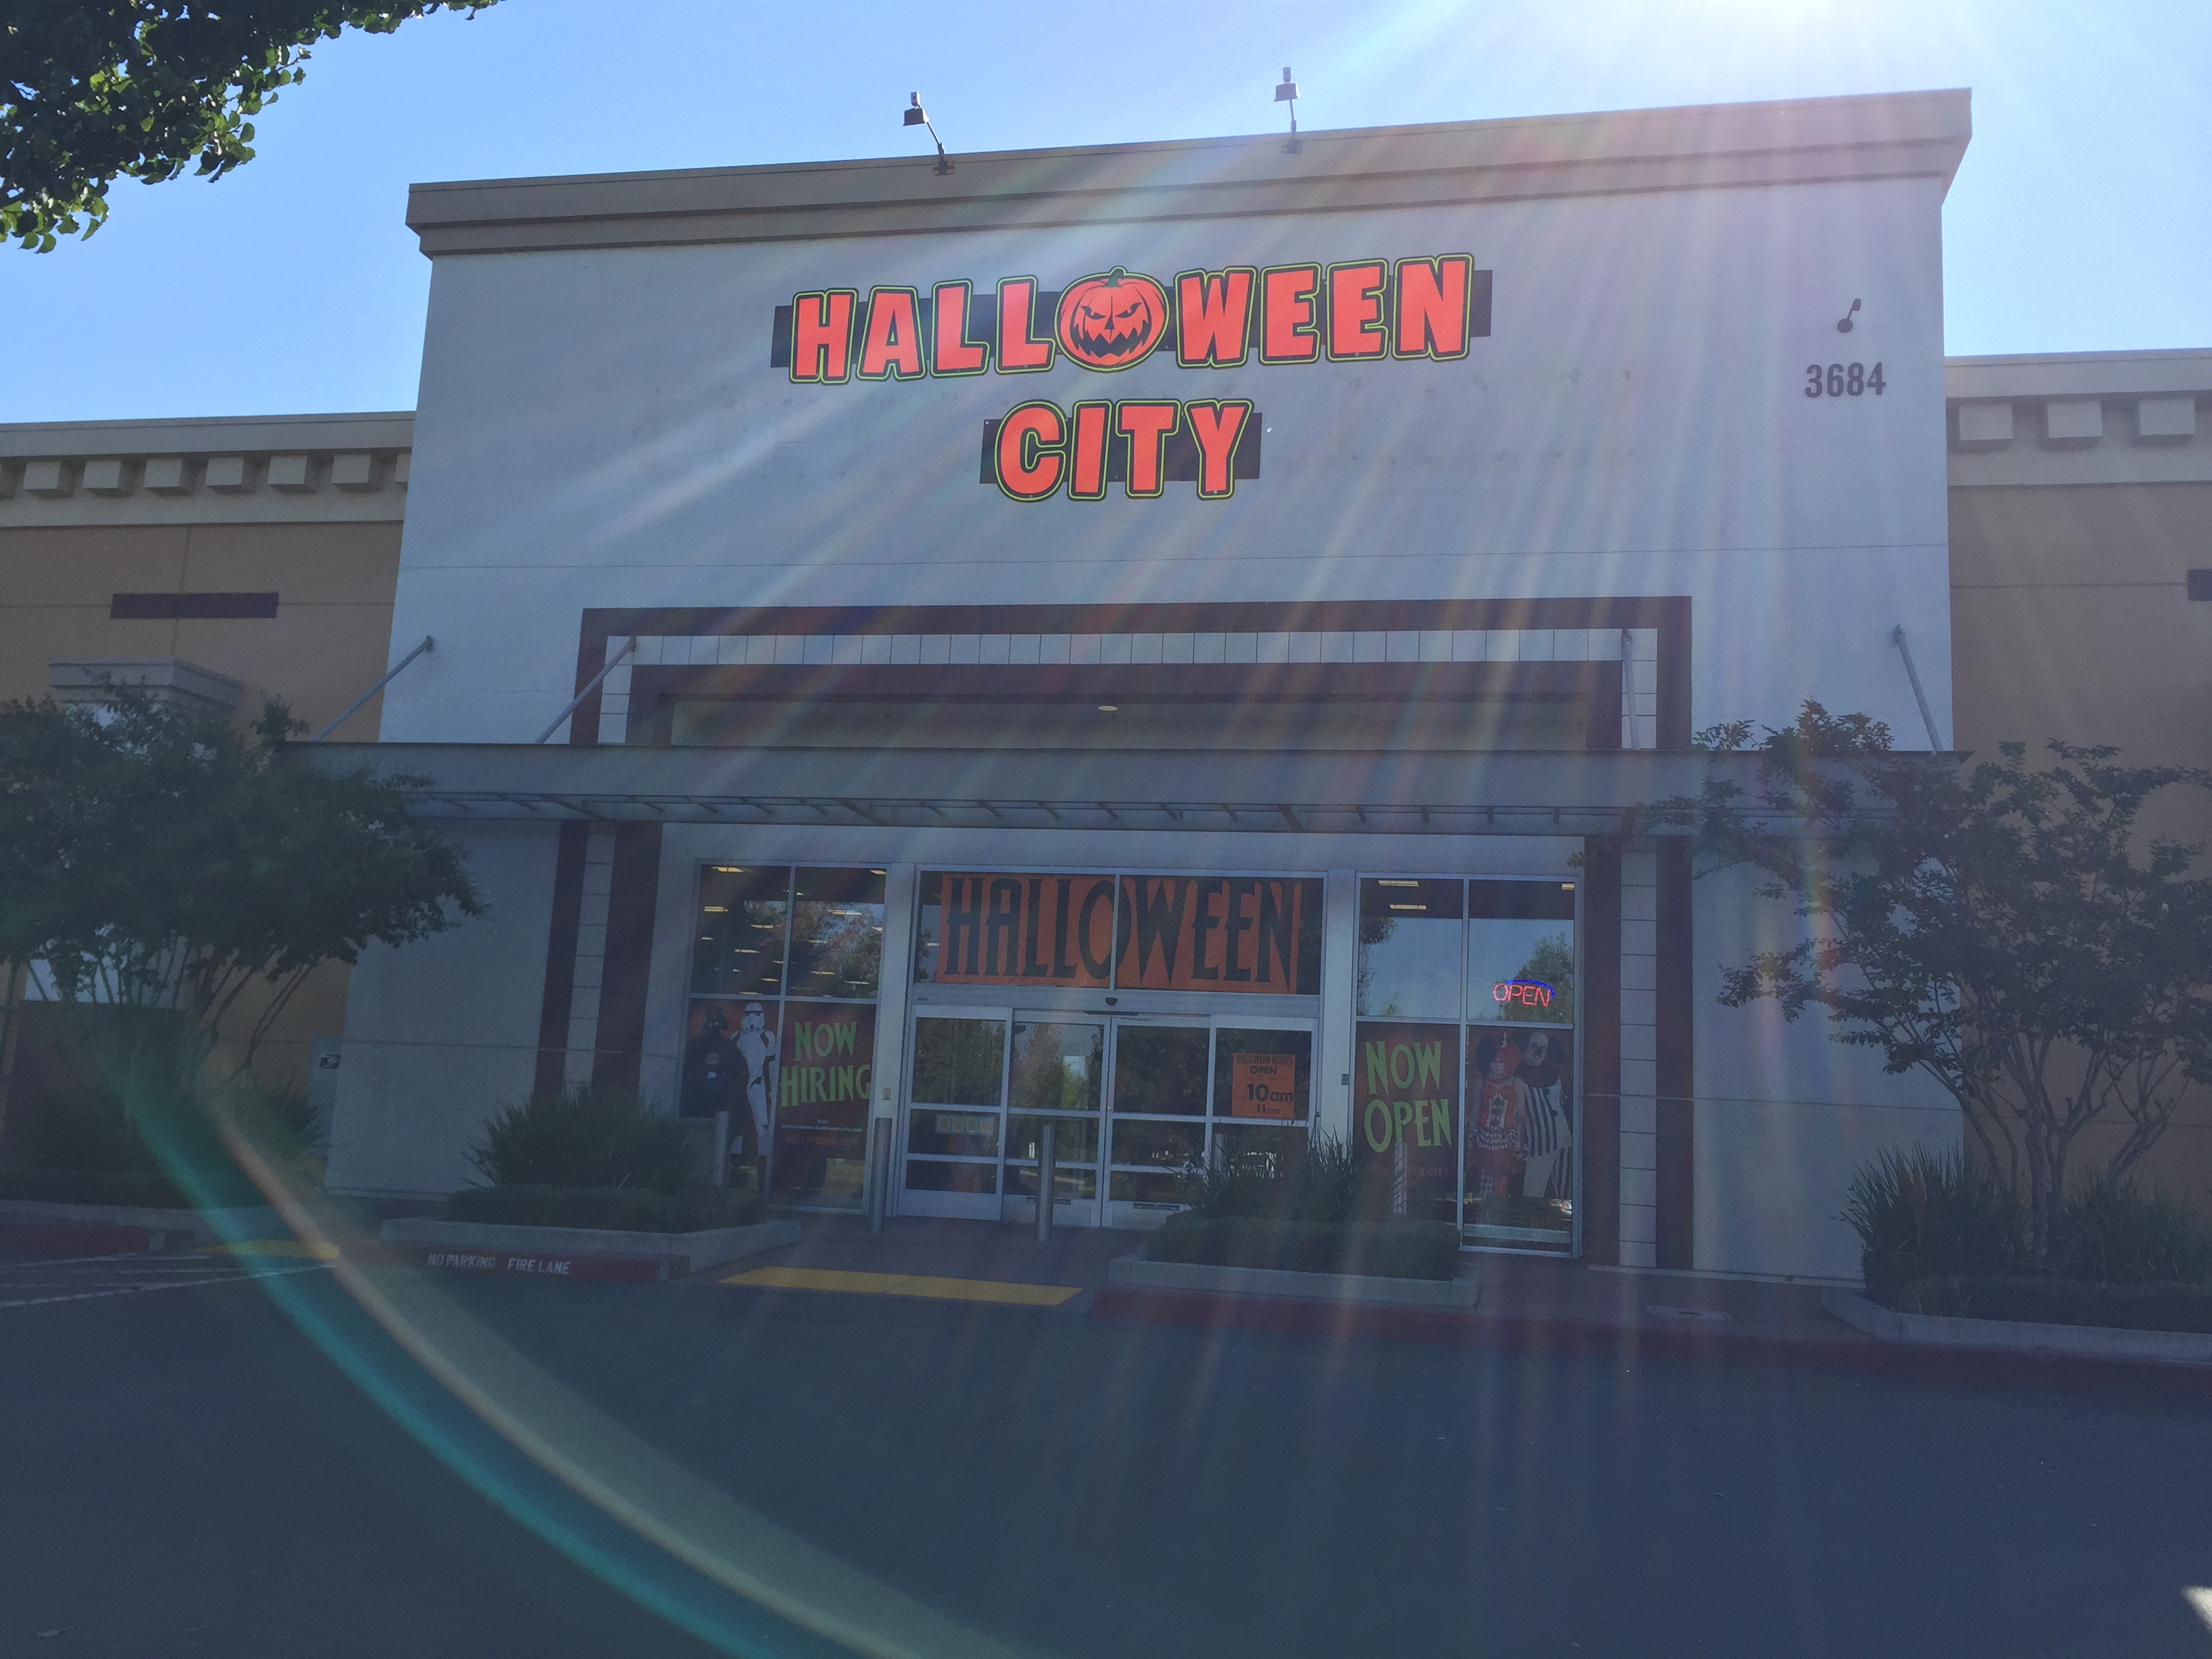 natomas, ca - 2 halloween stores to choose from in natomas | the